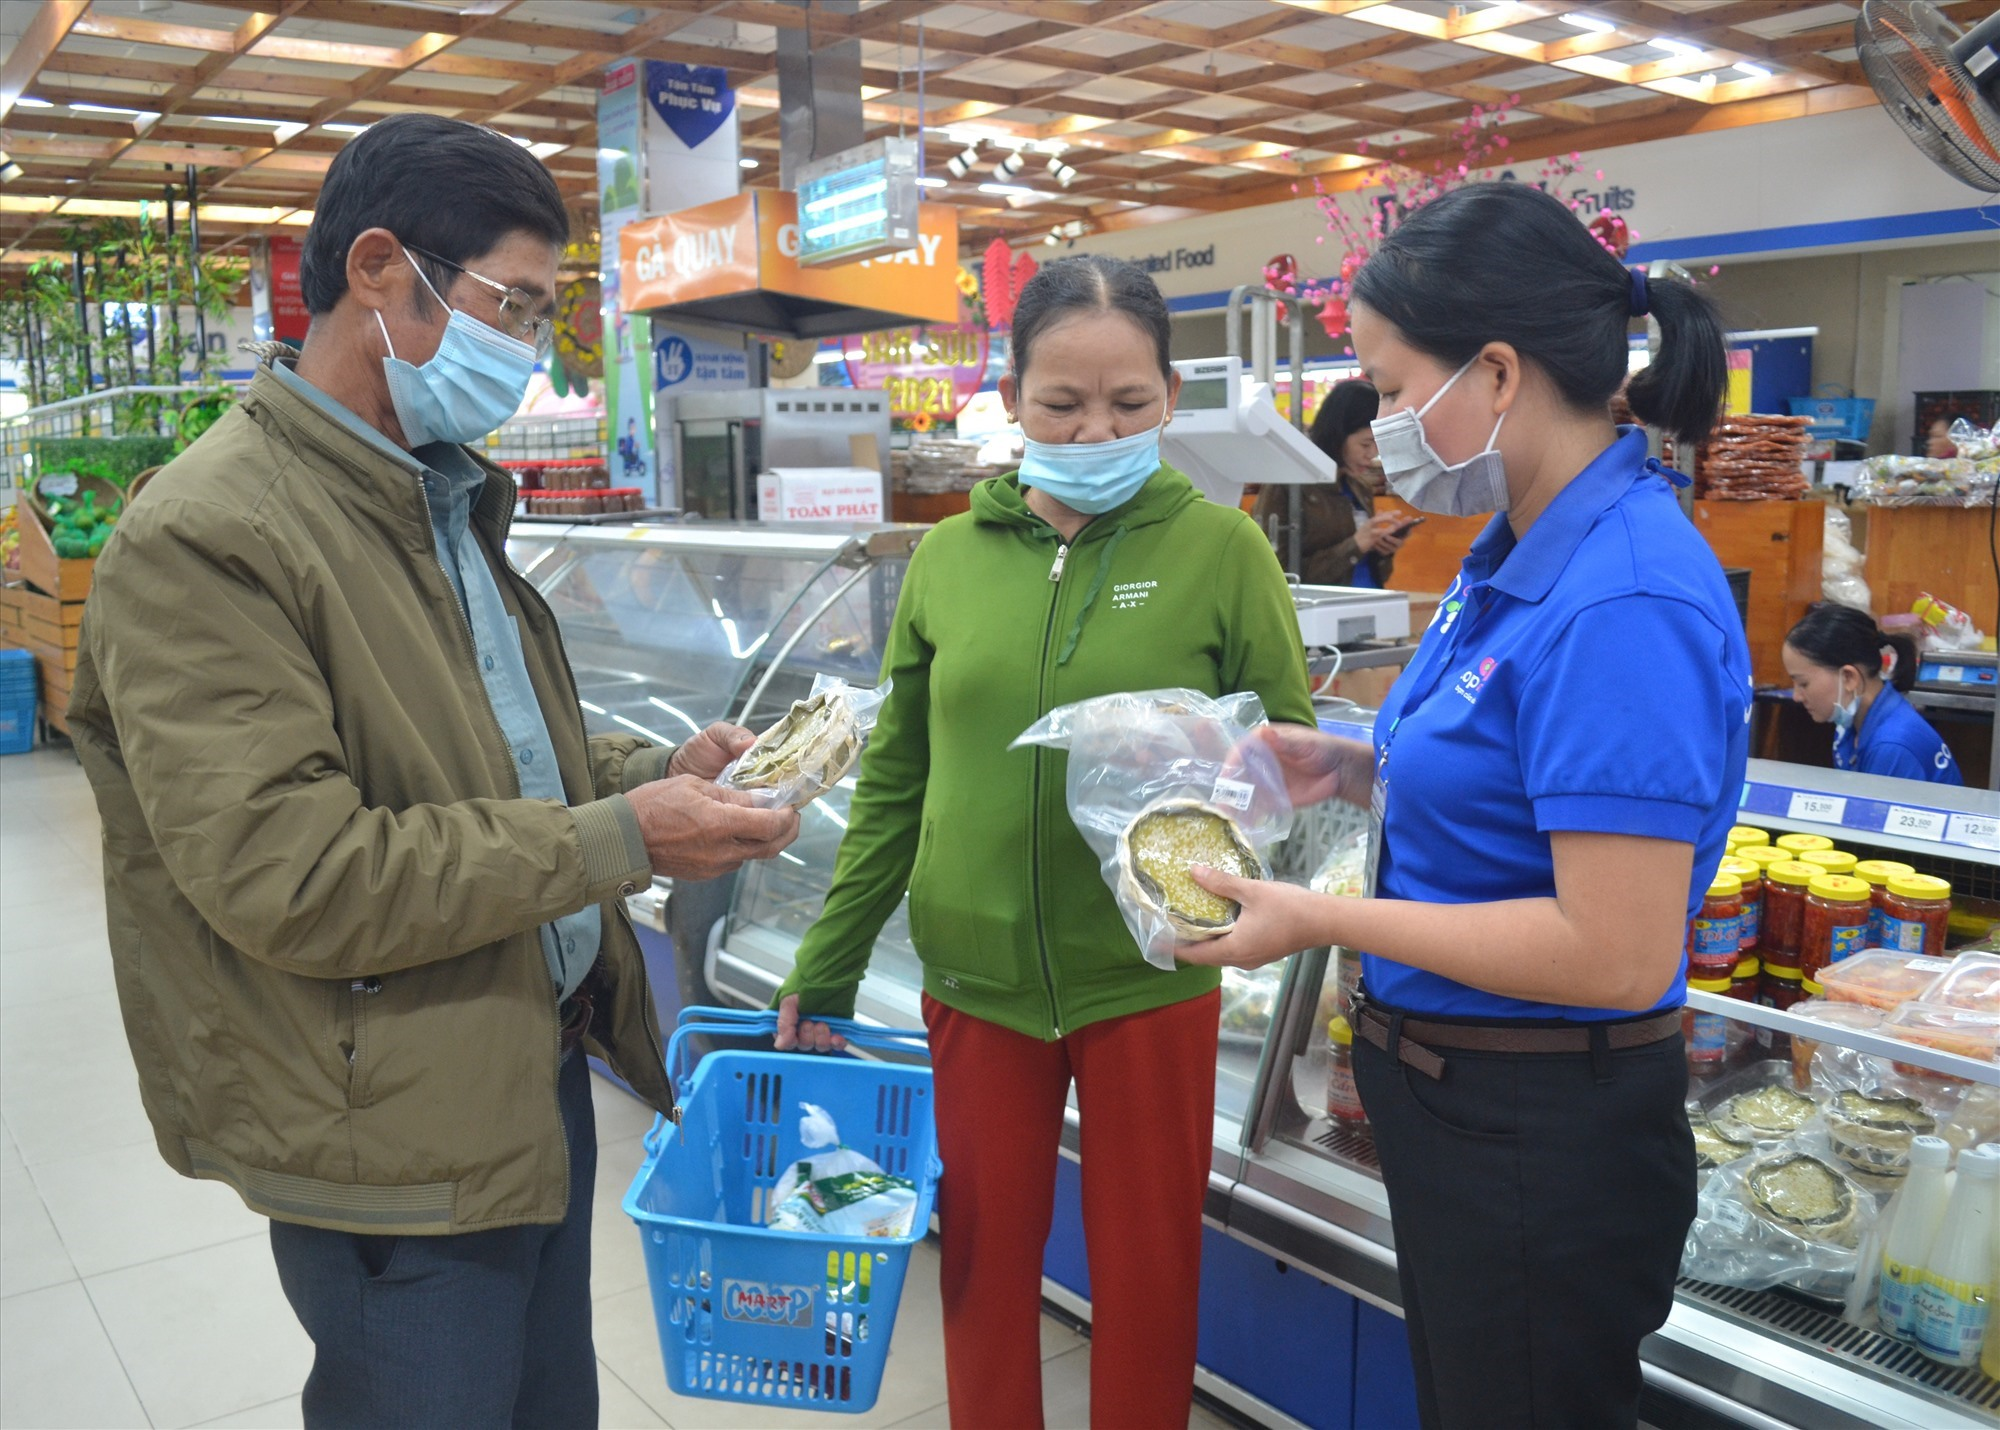 Customers at a supermarket in Quang Nam province